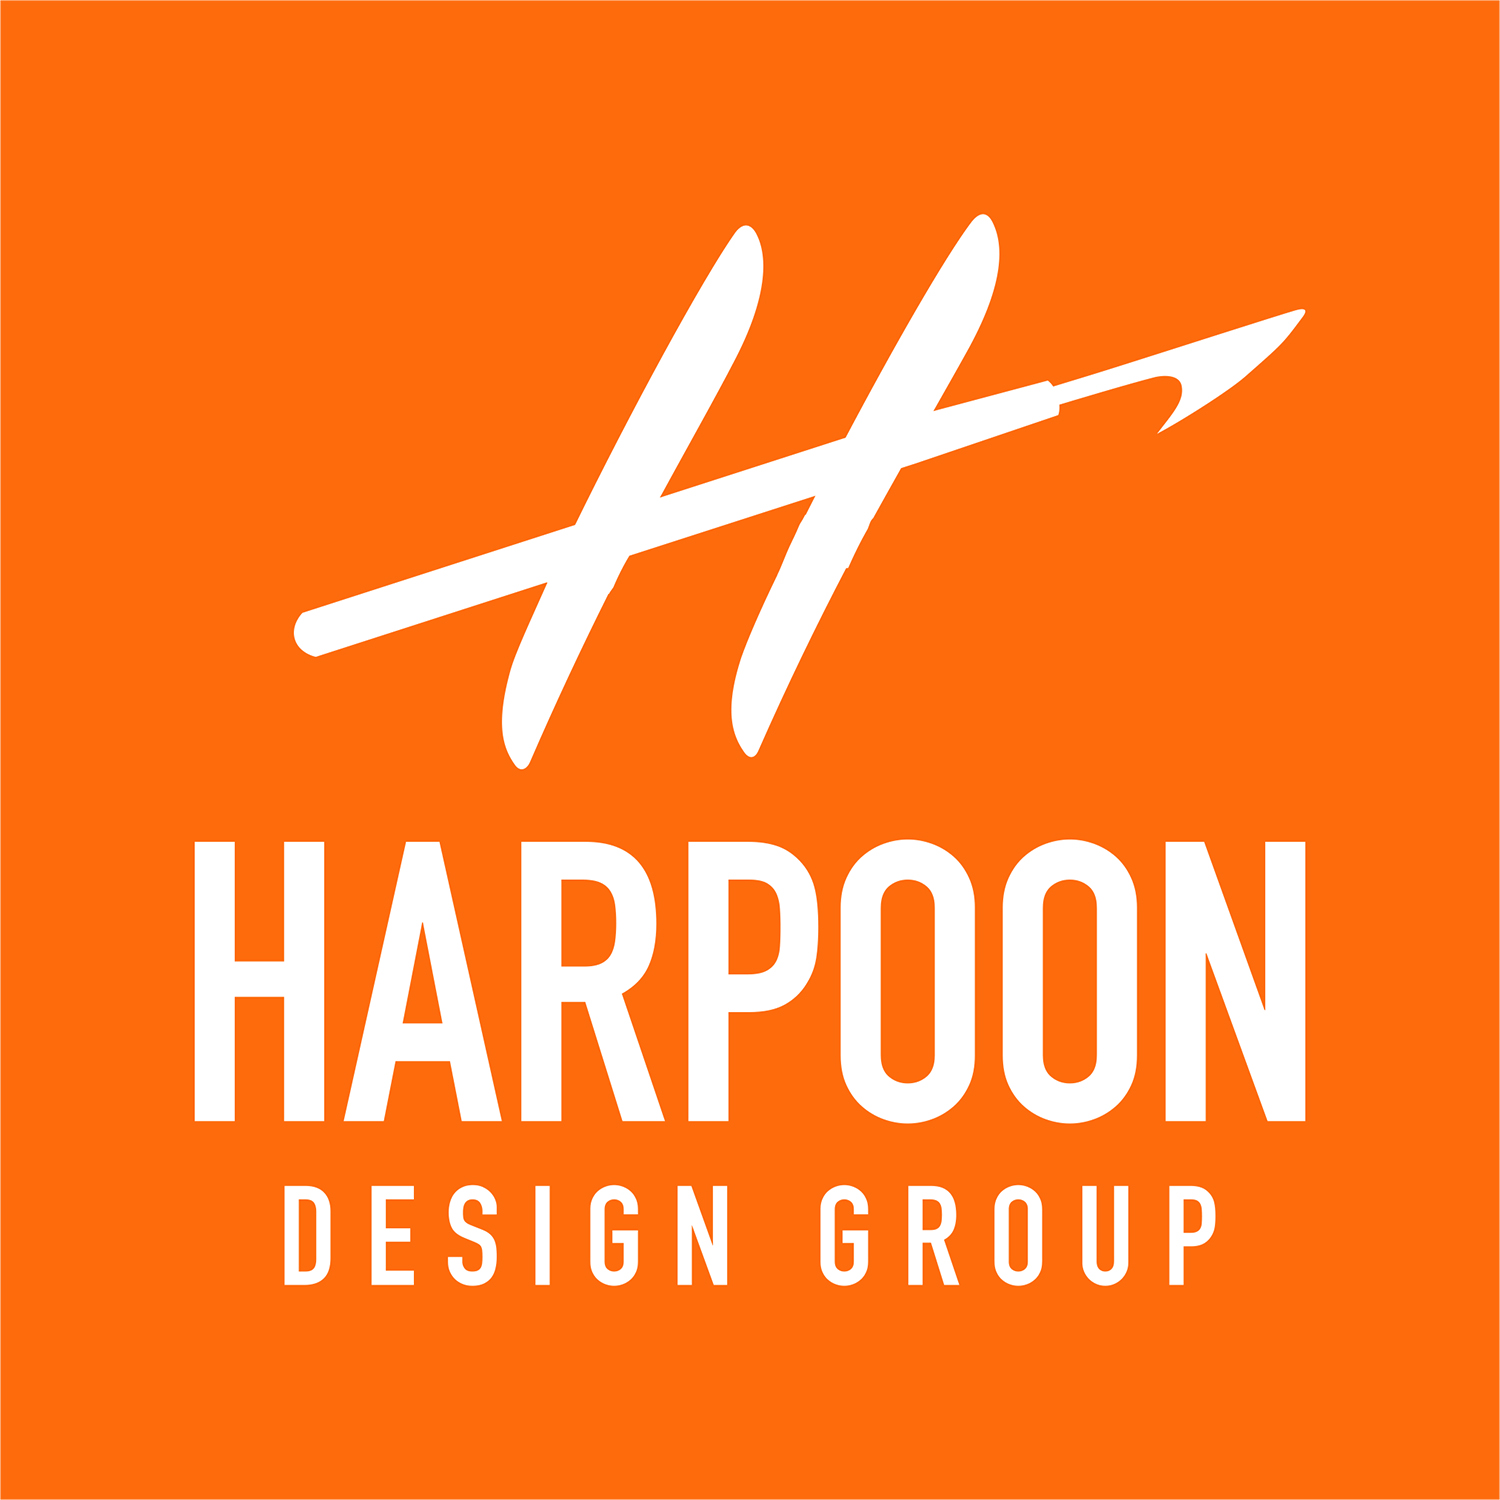 Harpoon Design Group